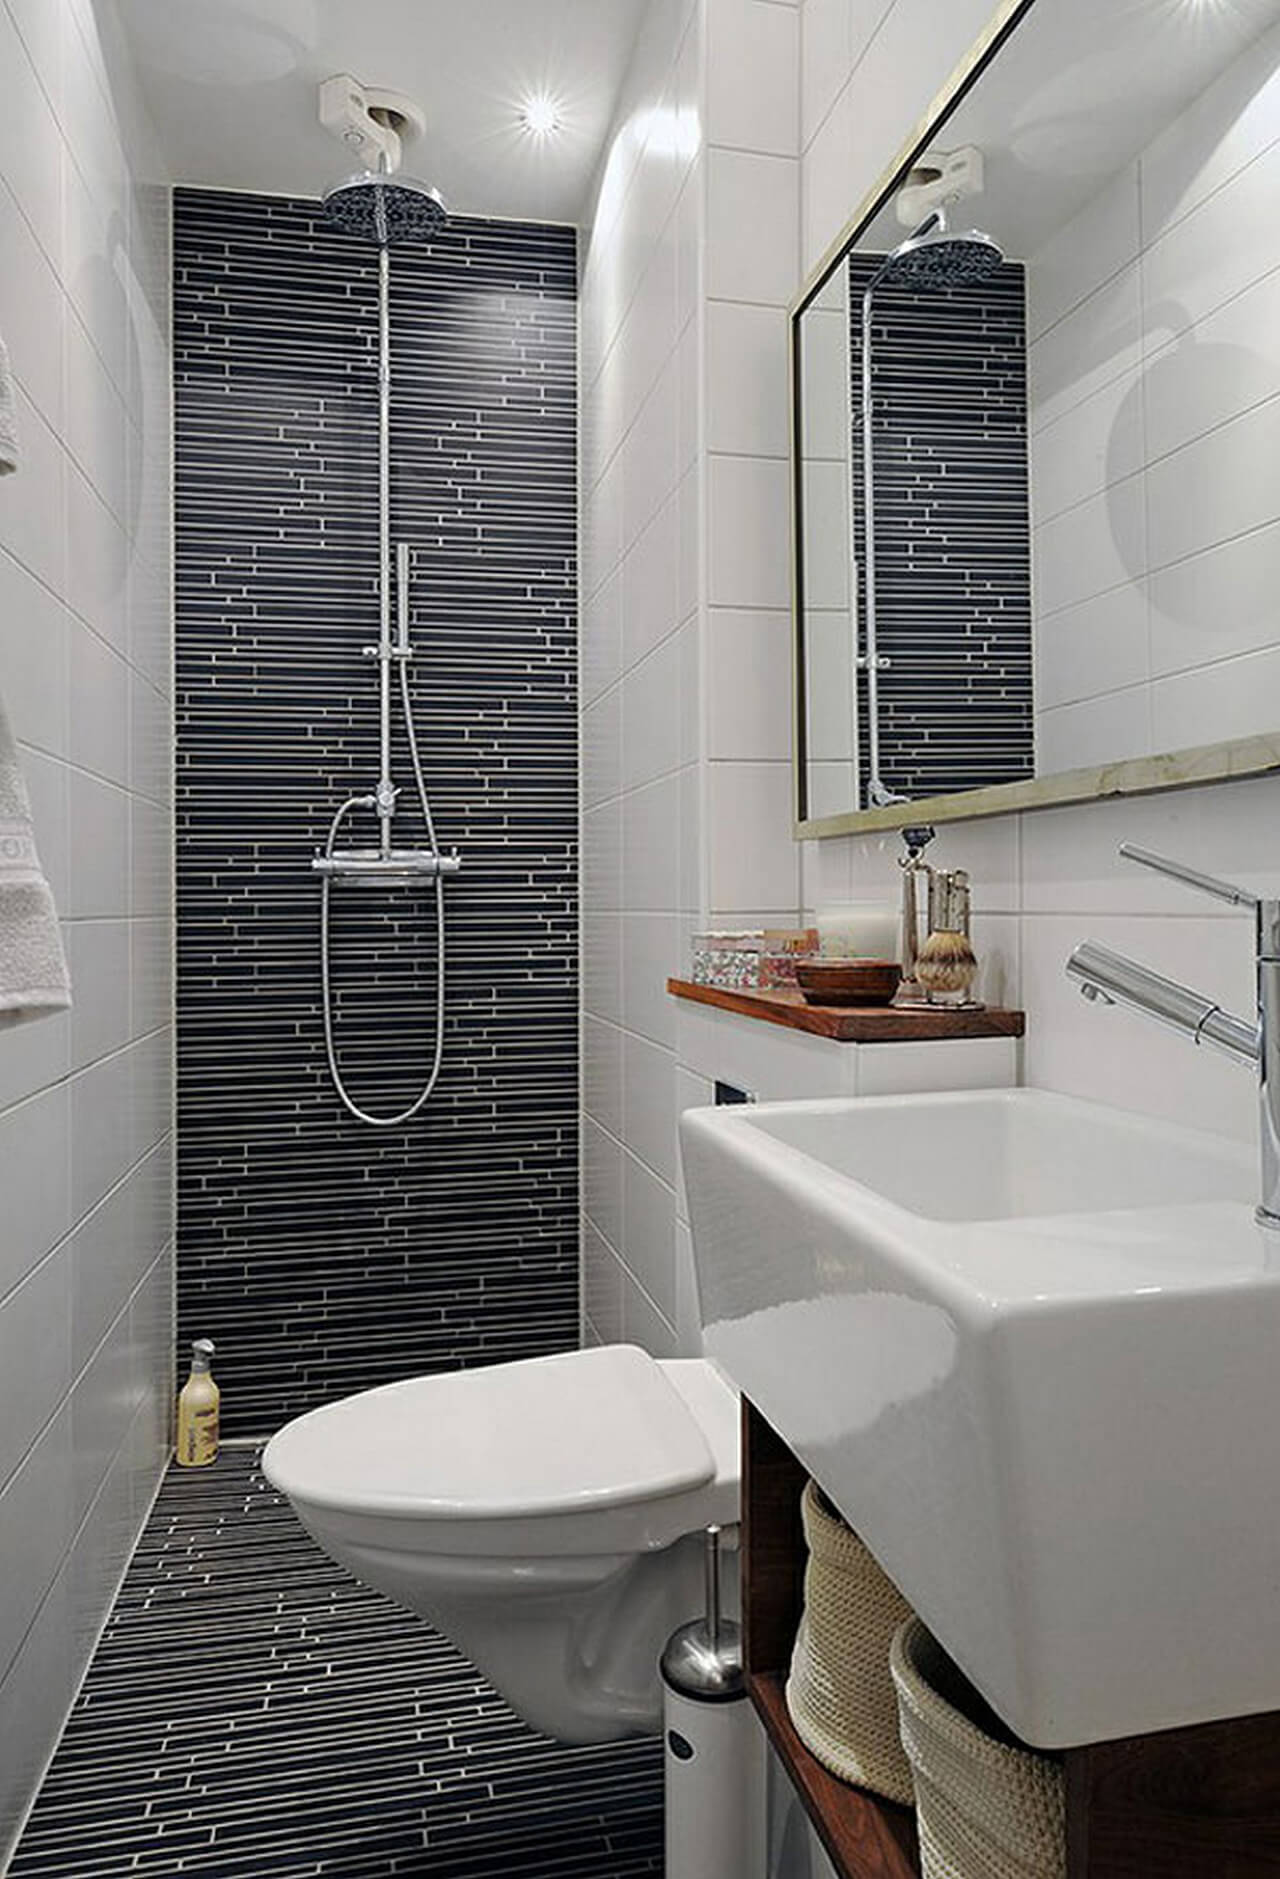 Curtain-Free Wet Room with Modern Tiles